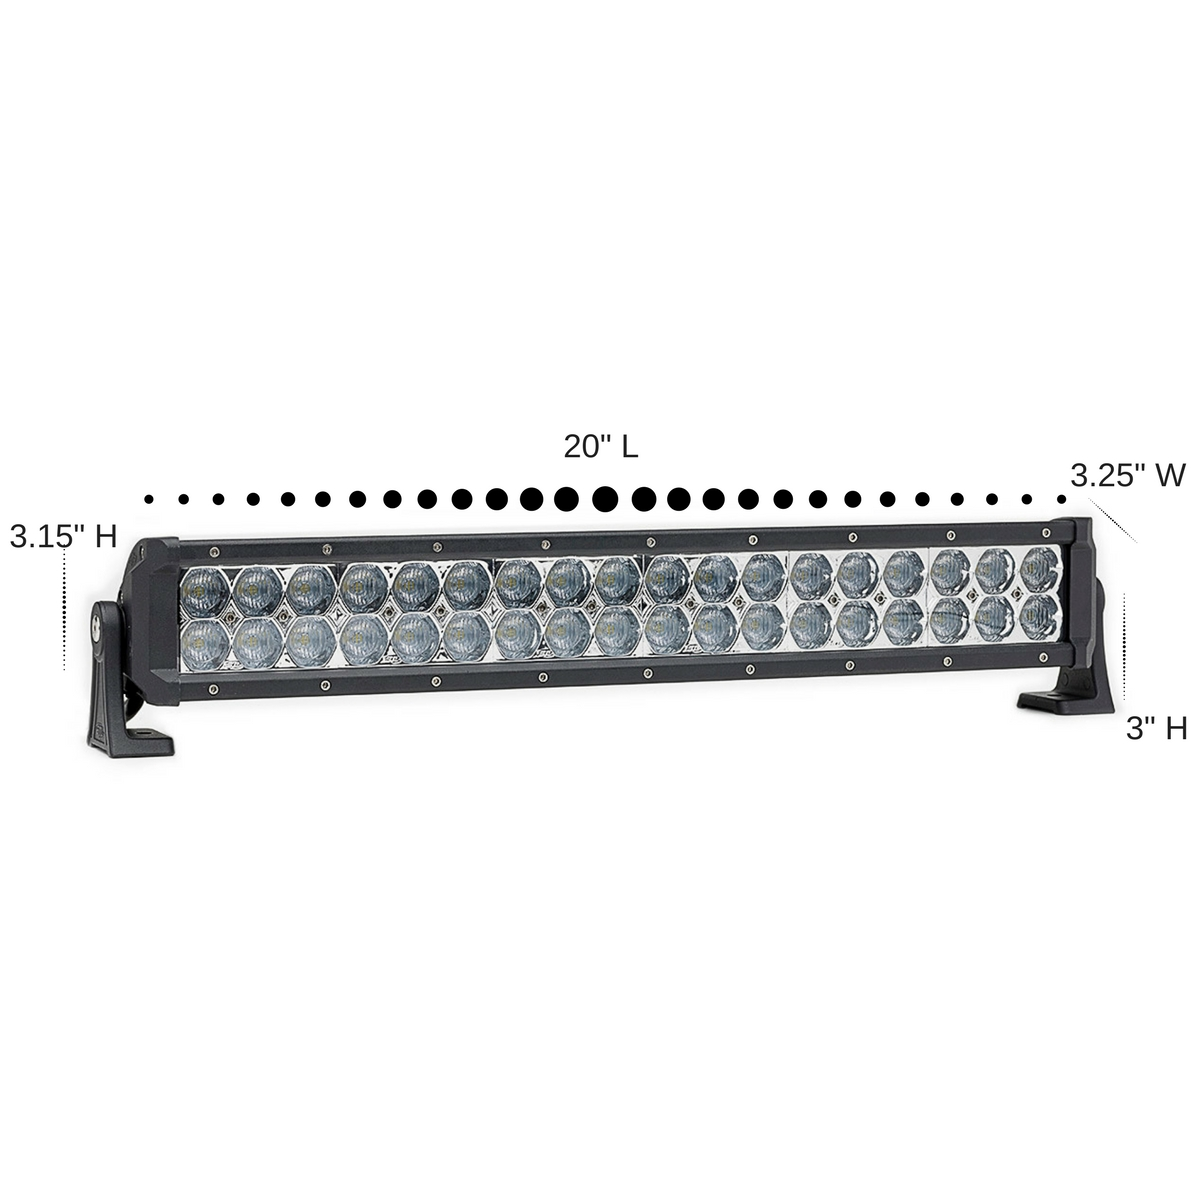 2 Pack Dual Carbine Floodlight Off Road 20 Inch LED Light Bar Dimensions